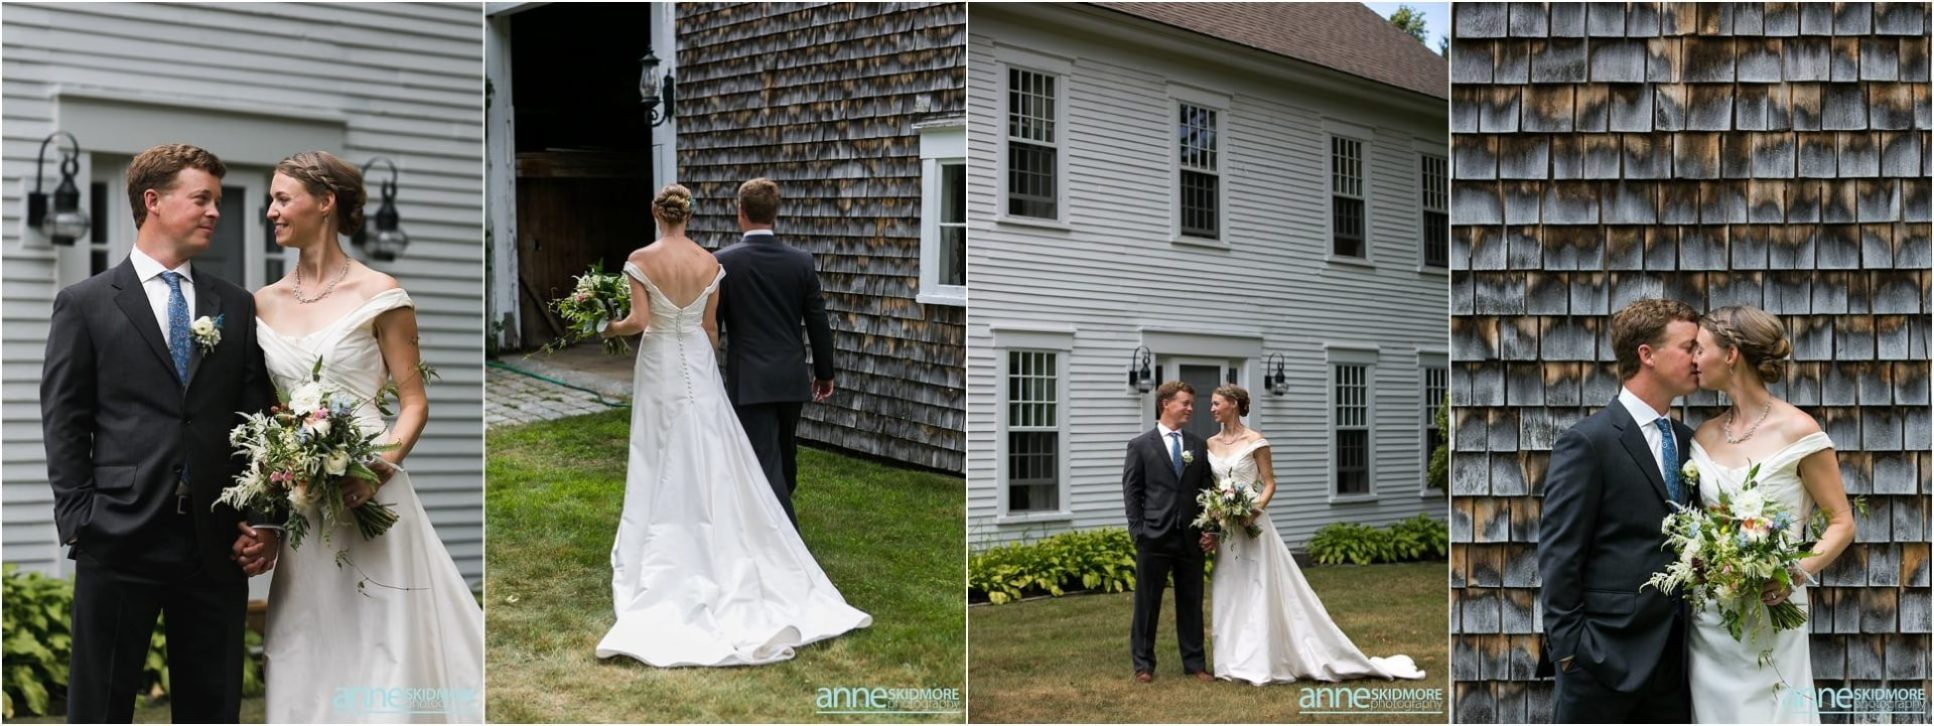 new_hampshire_wedding_photography_0030